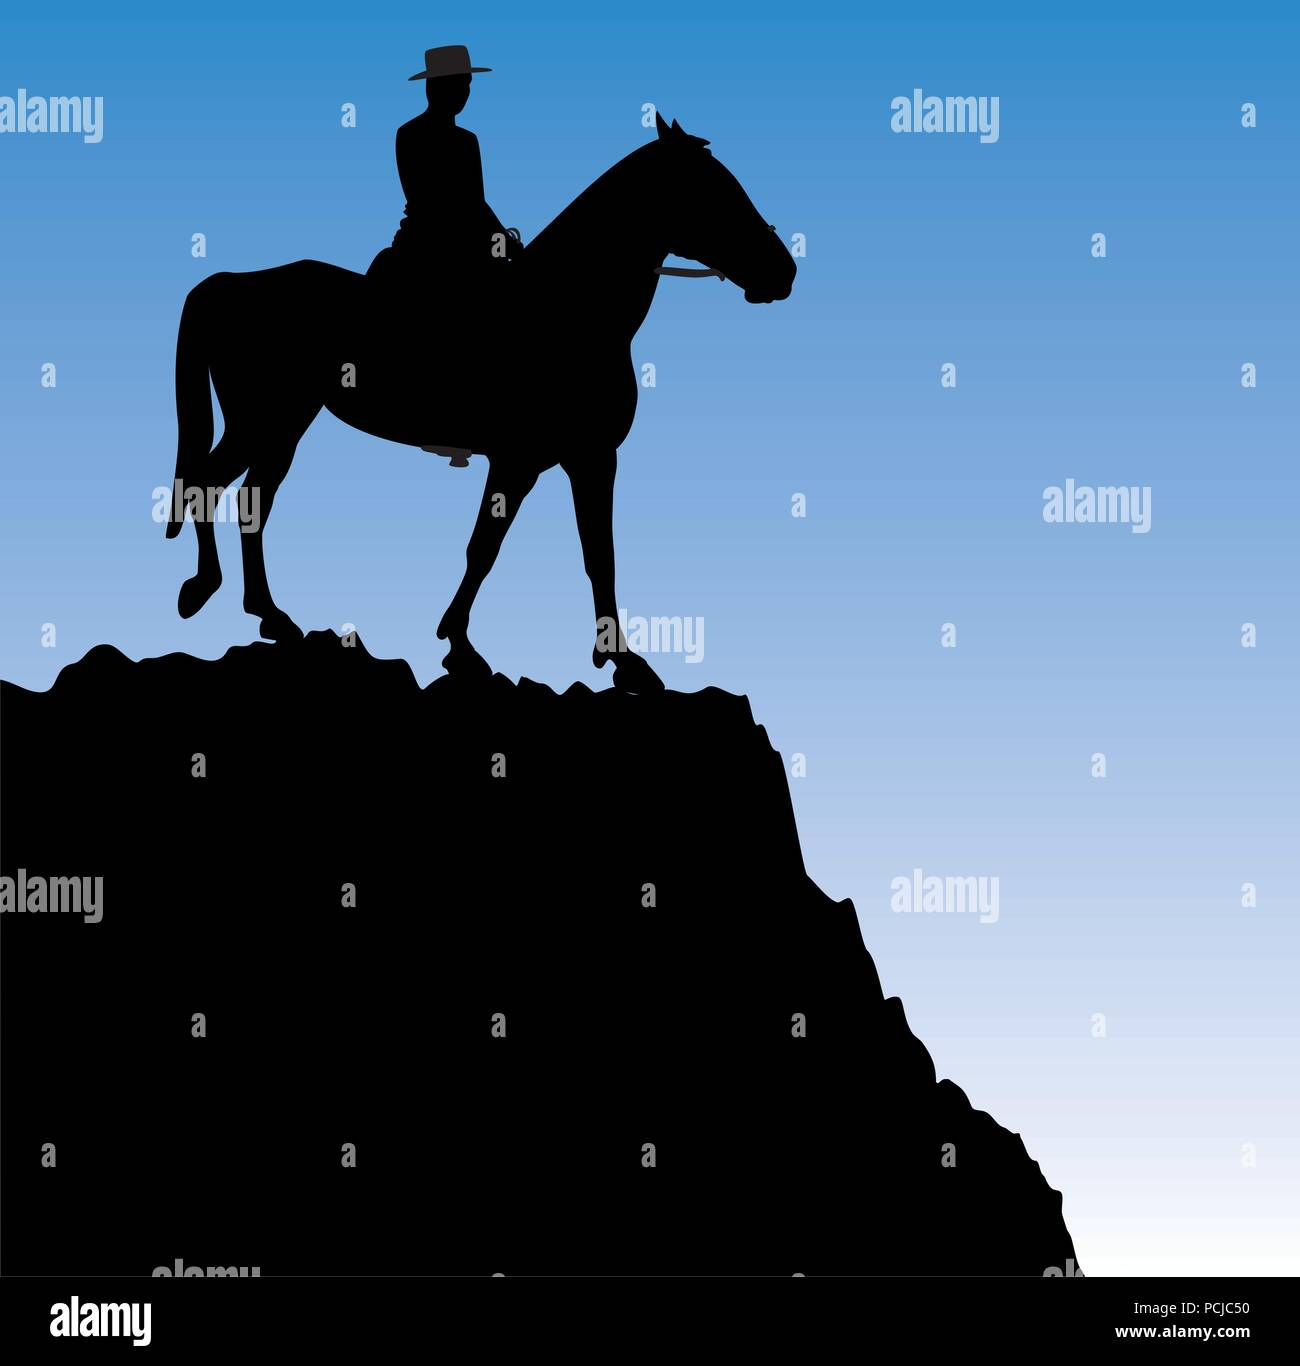 Vector Illustration Of Man On The Horse On Top Of The Mountain Stock Vector Image Art Alamy